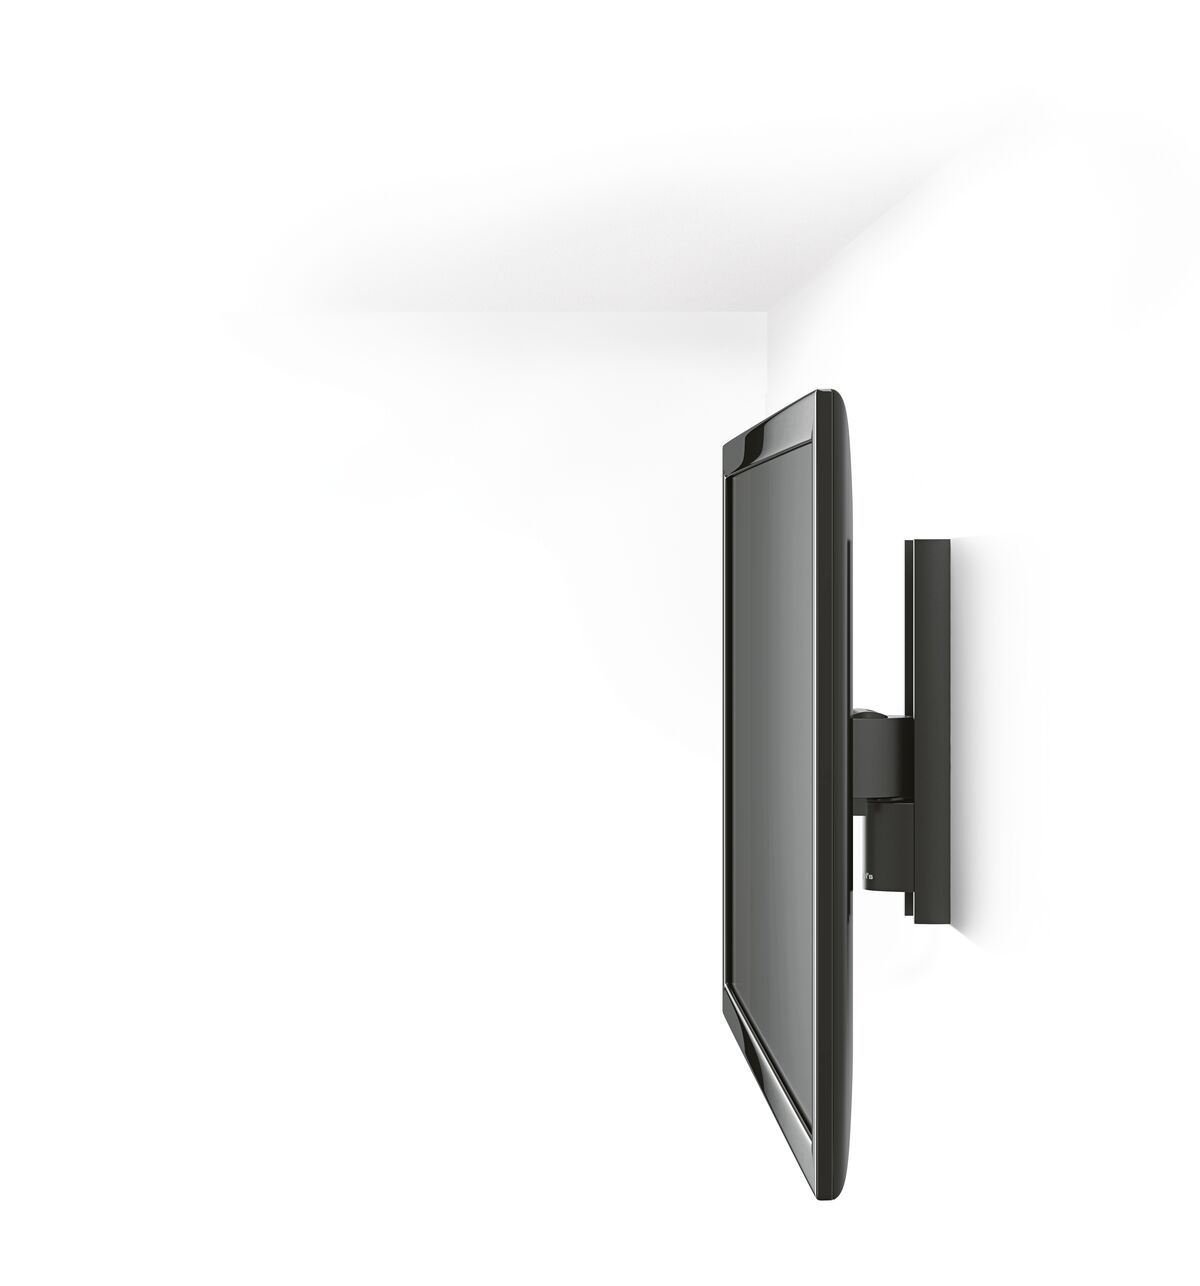 Vogel's WALL 1120 Full-Motion TV Wall Mount - Suitable for 19 up to 37 inch TVs - Limited motion (up to 60°) - Tilt -10°/+10° - Detail